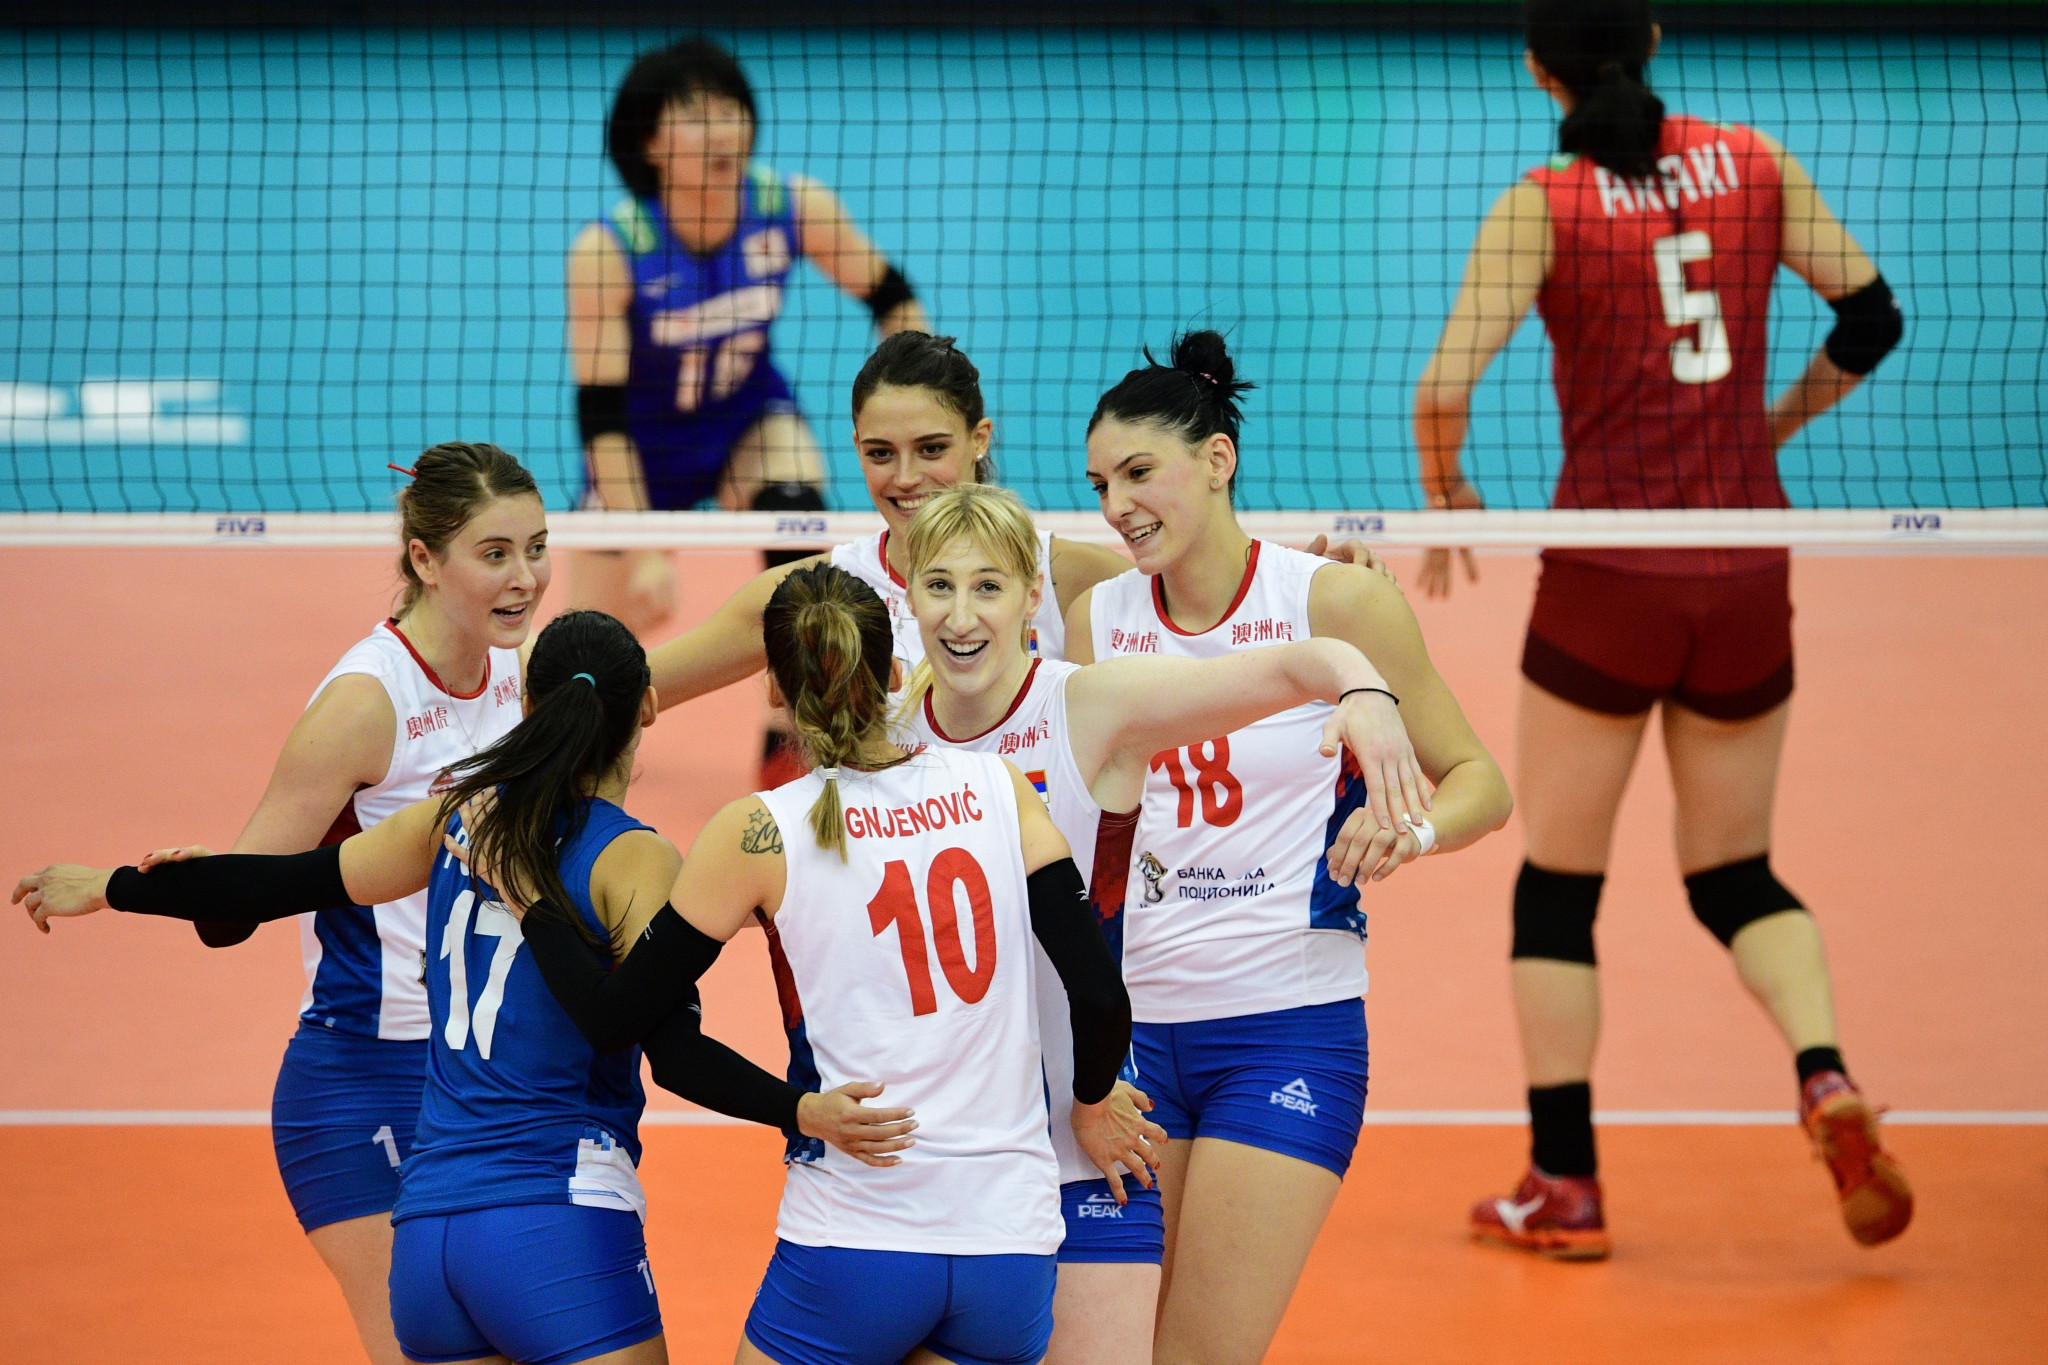 Serbia celebrate winning a point against Japan in the third round of the FIVB Women's World Volleyball Championships in Japan, a match which they eventually won ©Getty Images